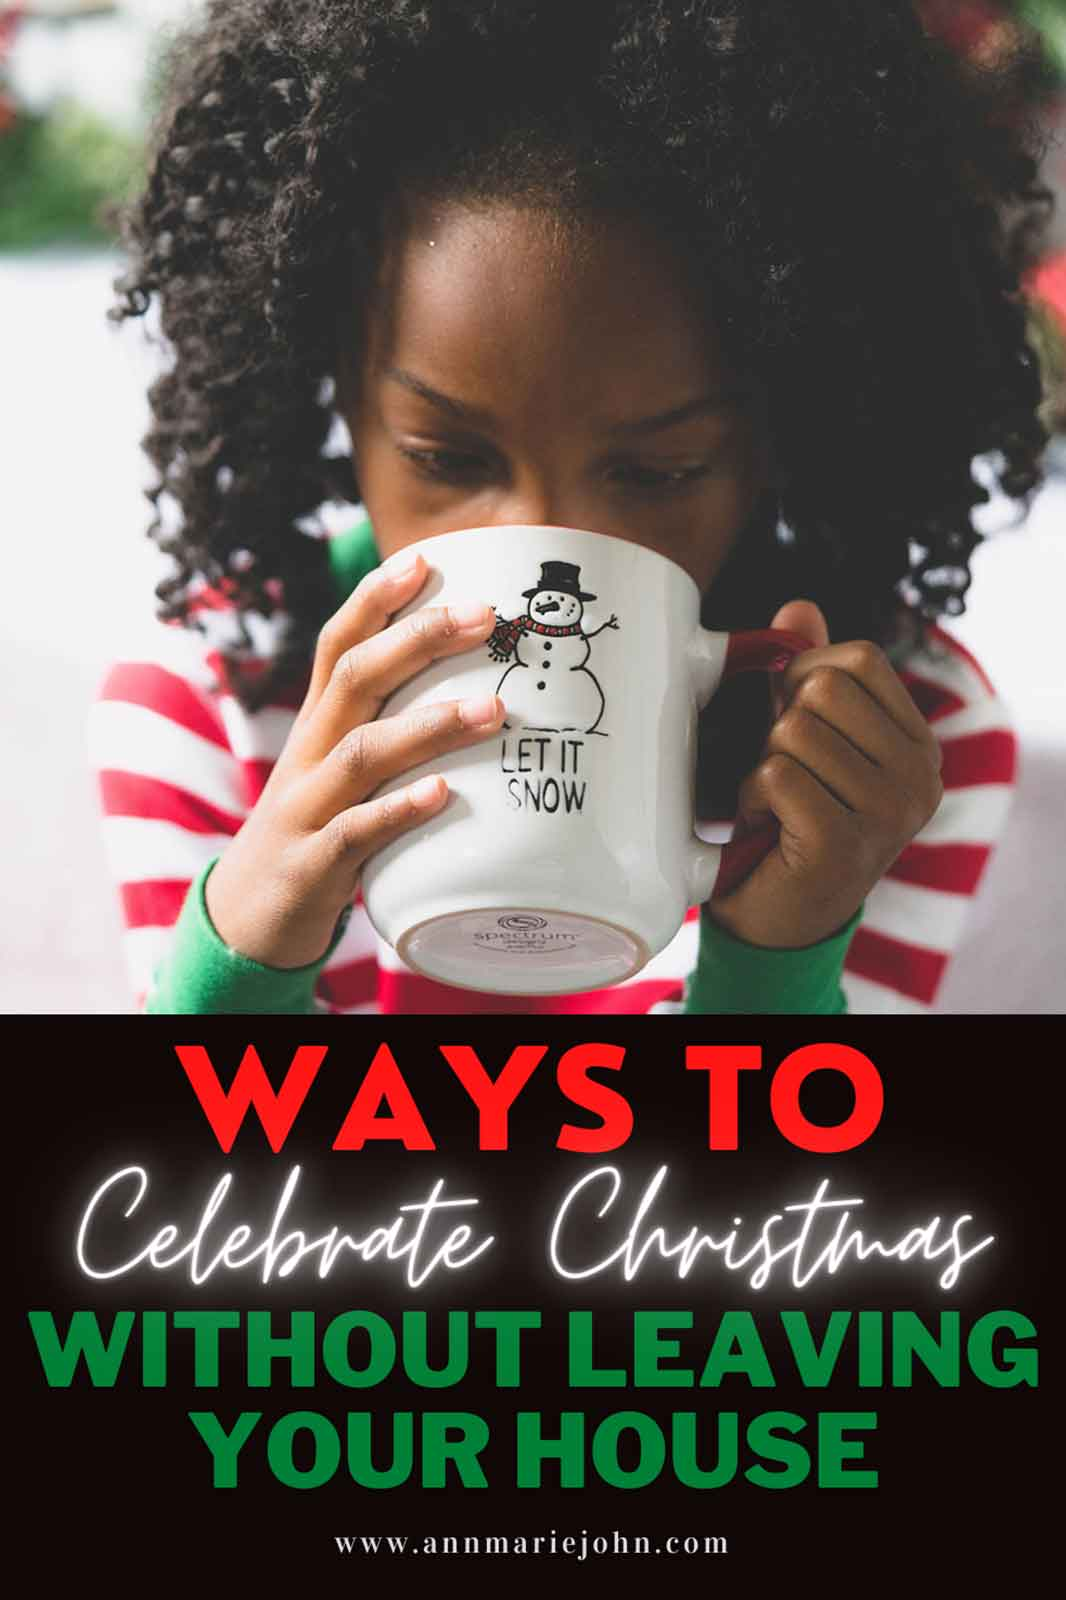 Ways to Celebrate Christmas without Leaving the House